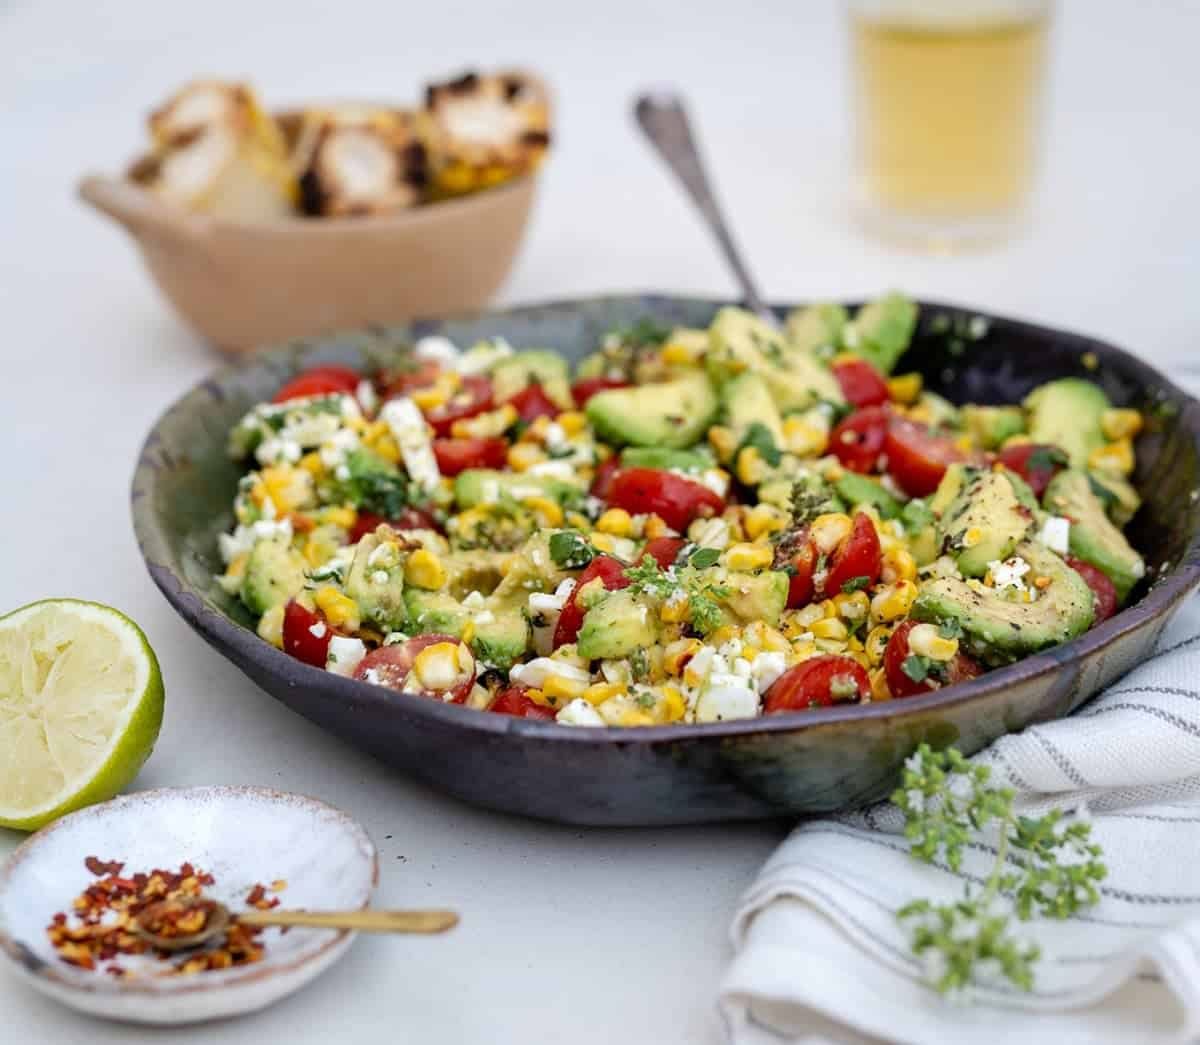 Grilled corn and avocado salad in a bowl